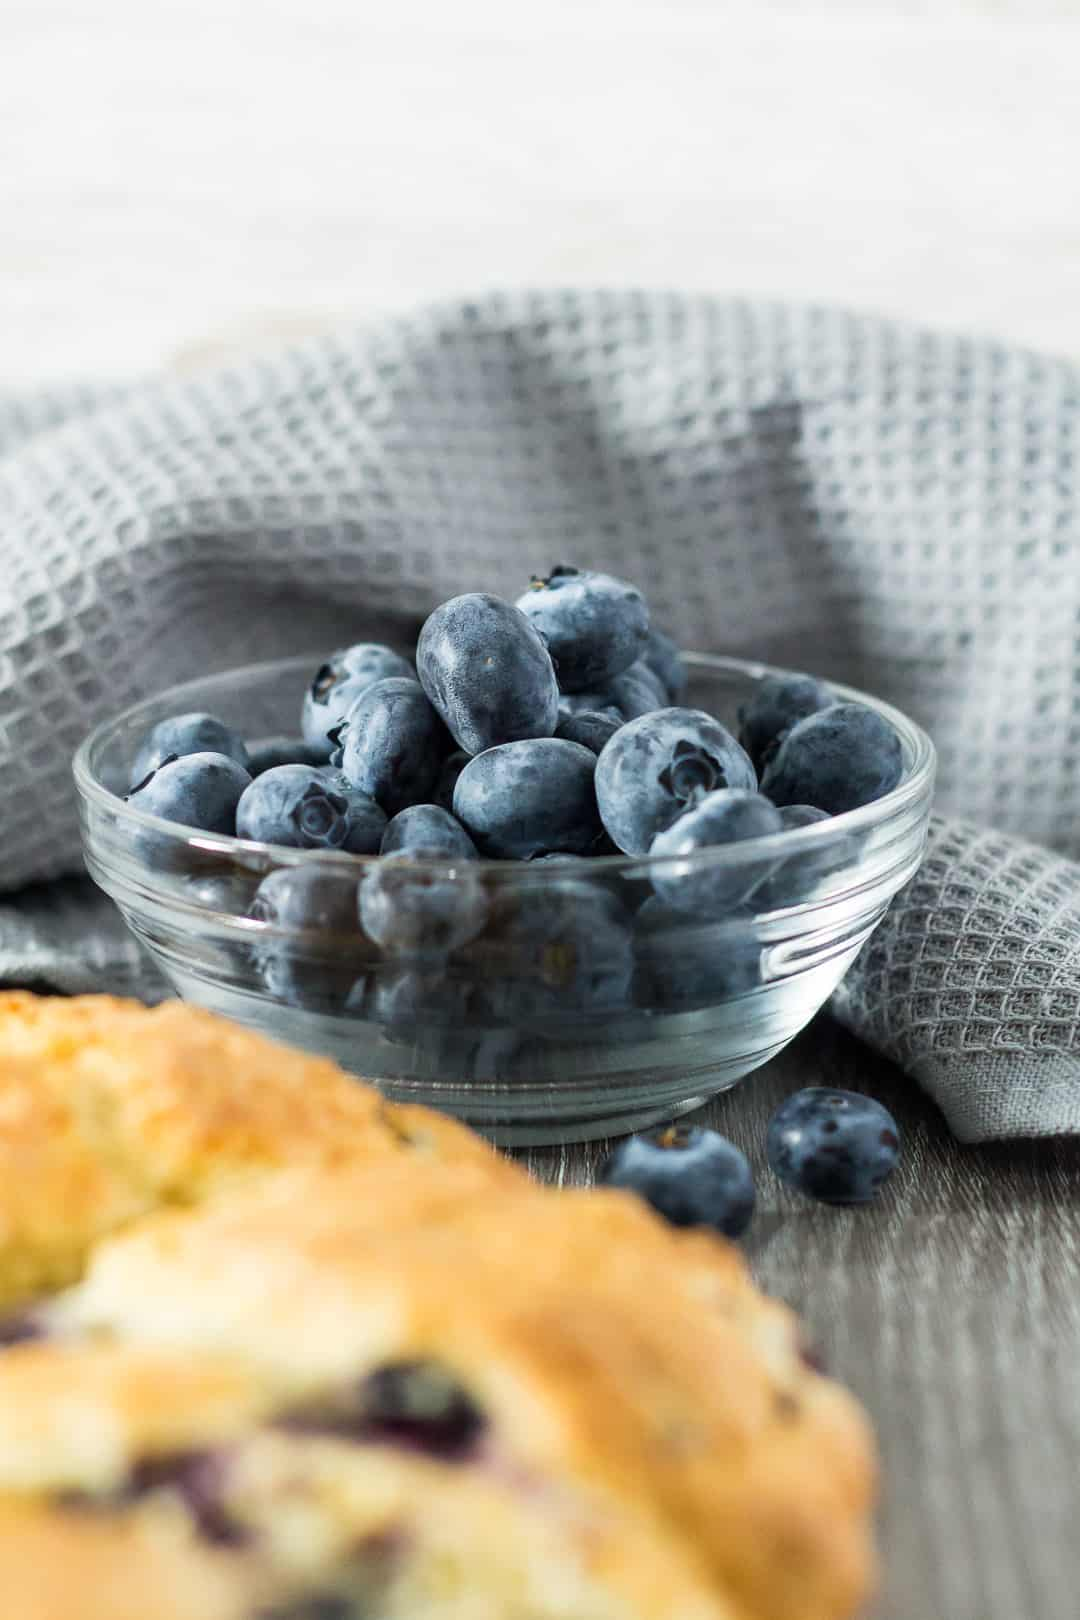 Blueberries in a small glass bowl for Blueberry Orange Scones.